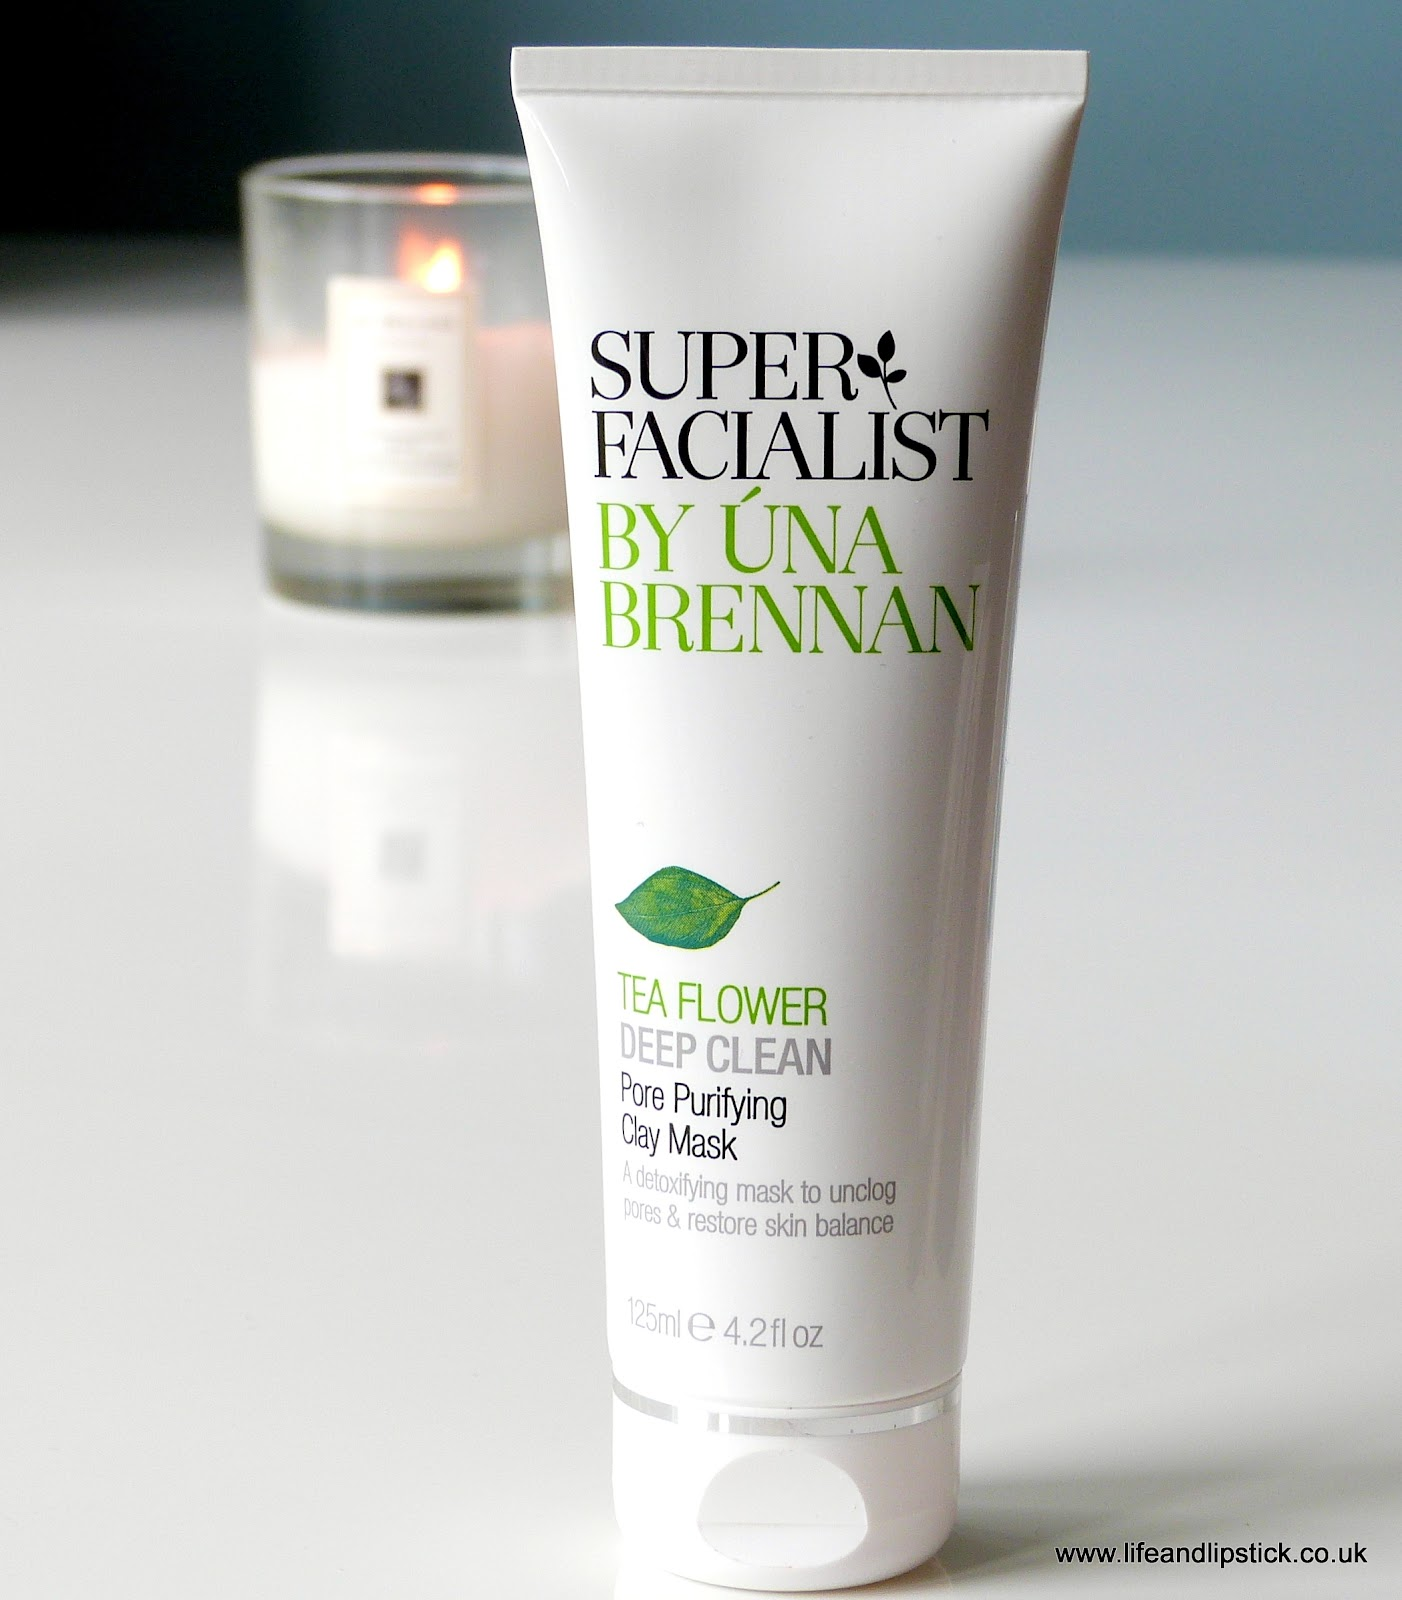 Super Facialist by Una Brennan Tea Flower Deep Clean Pore Purifying Clay Mask